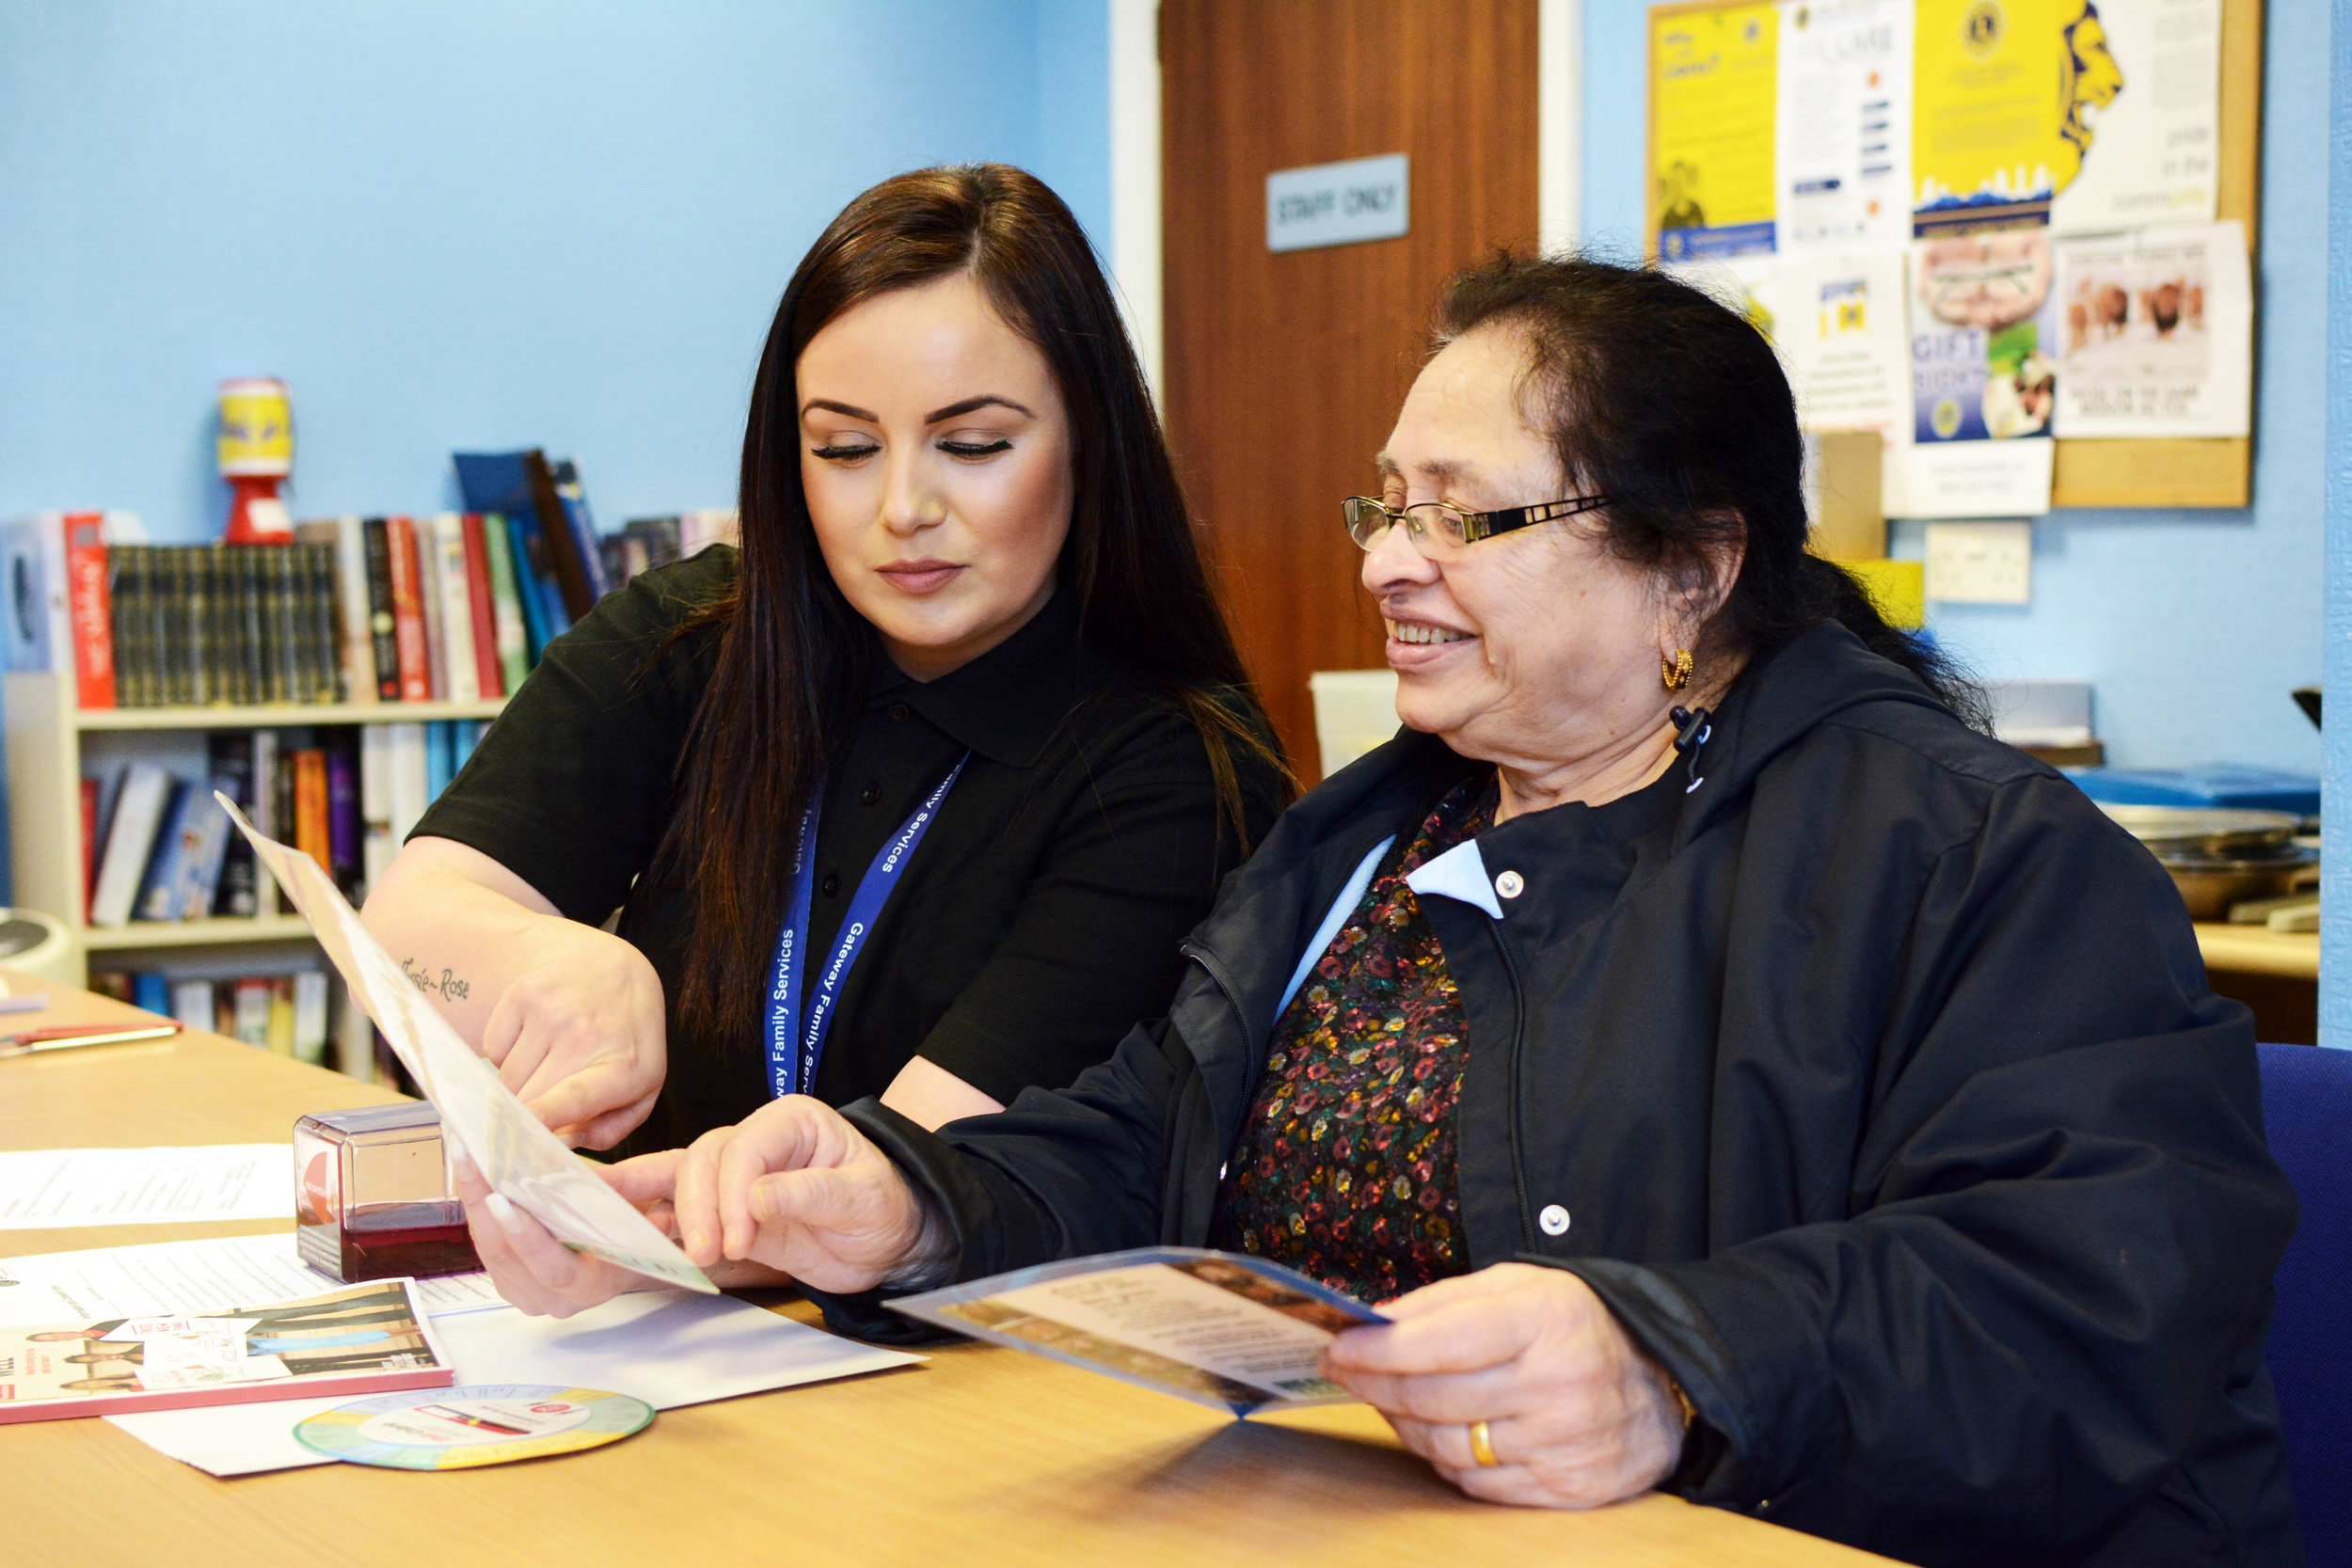 Helping people find ways to feel healthier and happier - The Healthy Futures Service is provided by Gateway Family Services Community Interest Company. It delivers Social Prescribing to patients registered with our federation member practices.